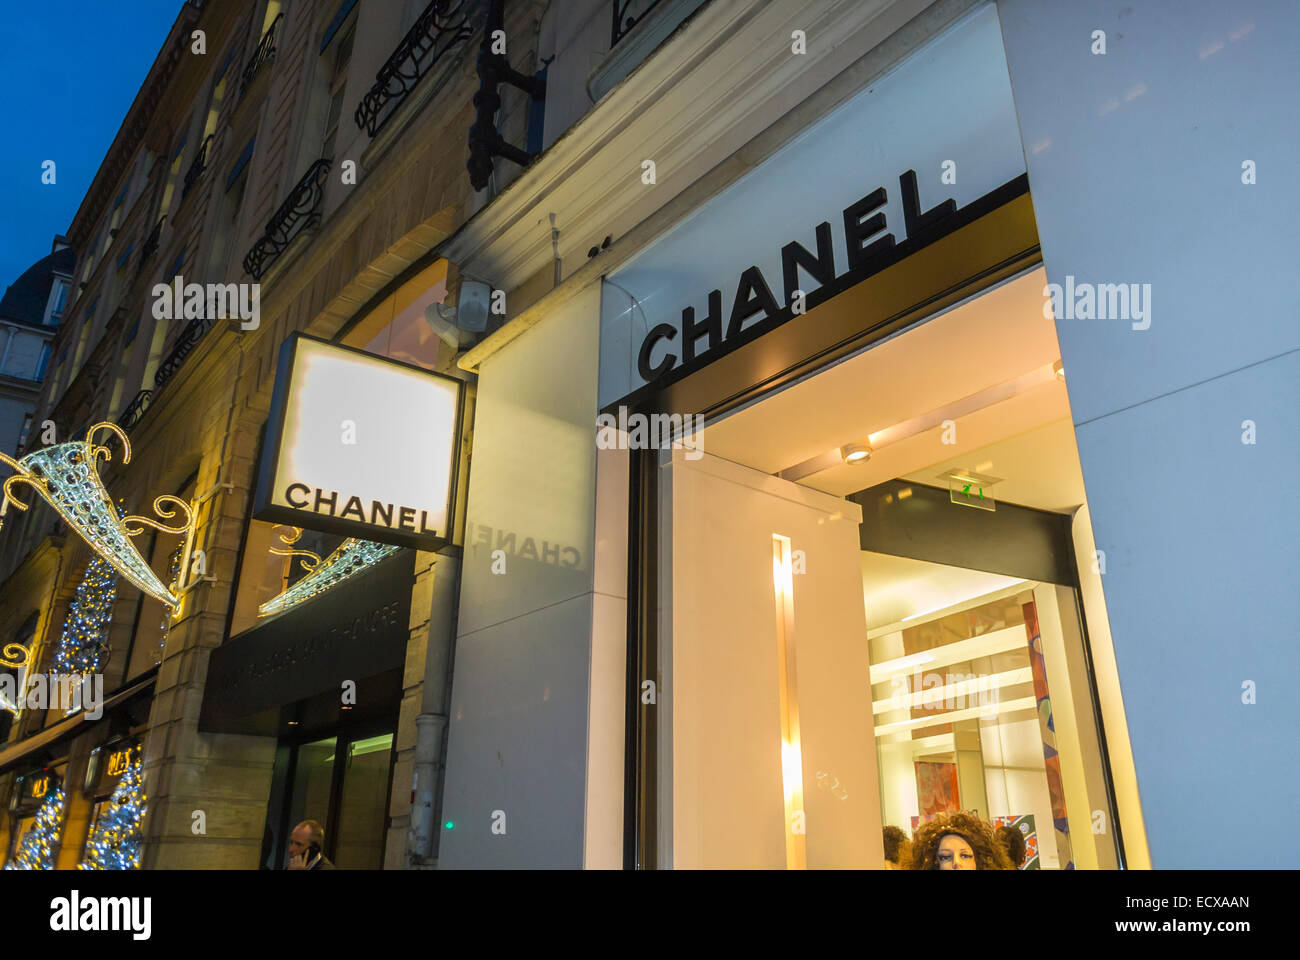 Paris street outside night luxury fashion brands window for Chanel locations in paris